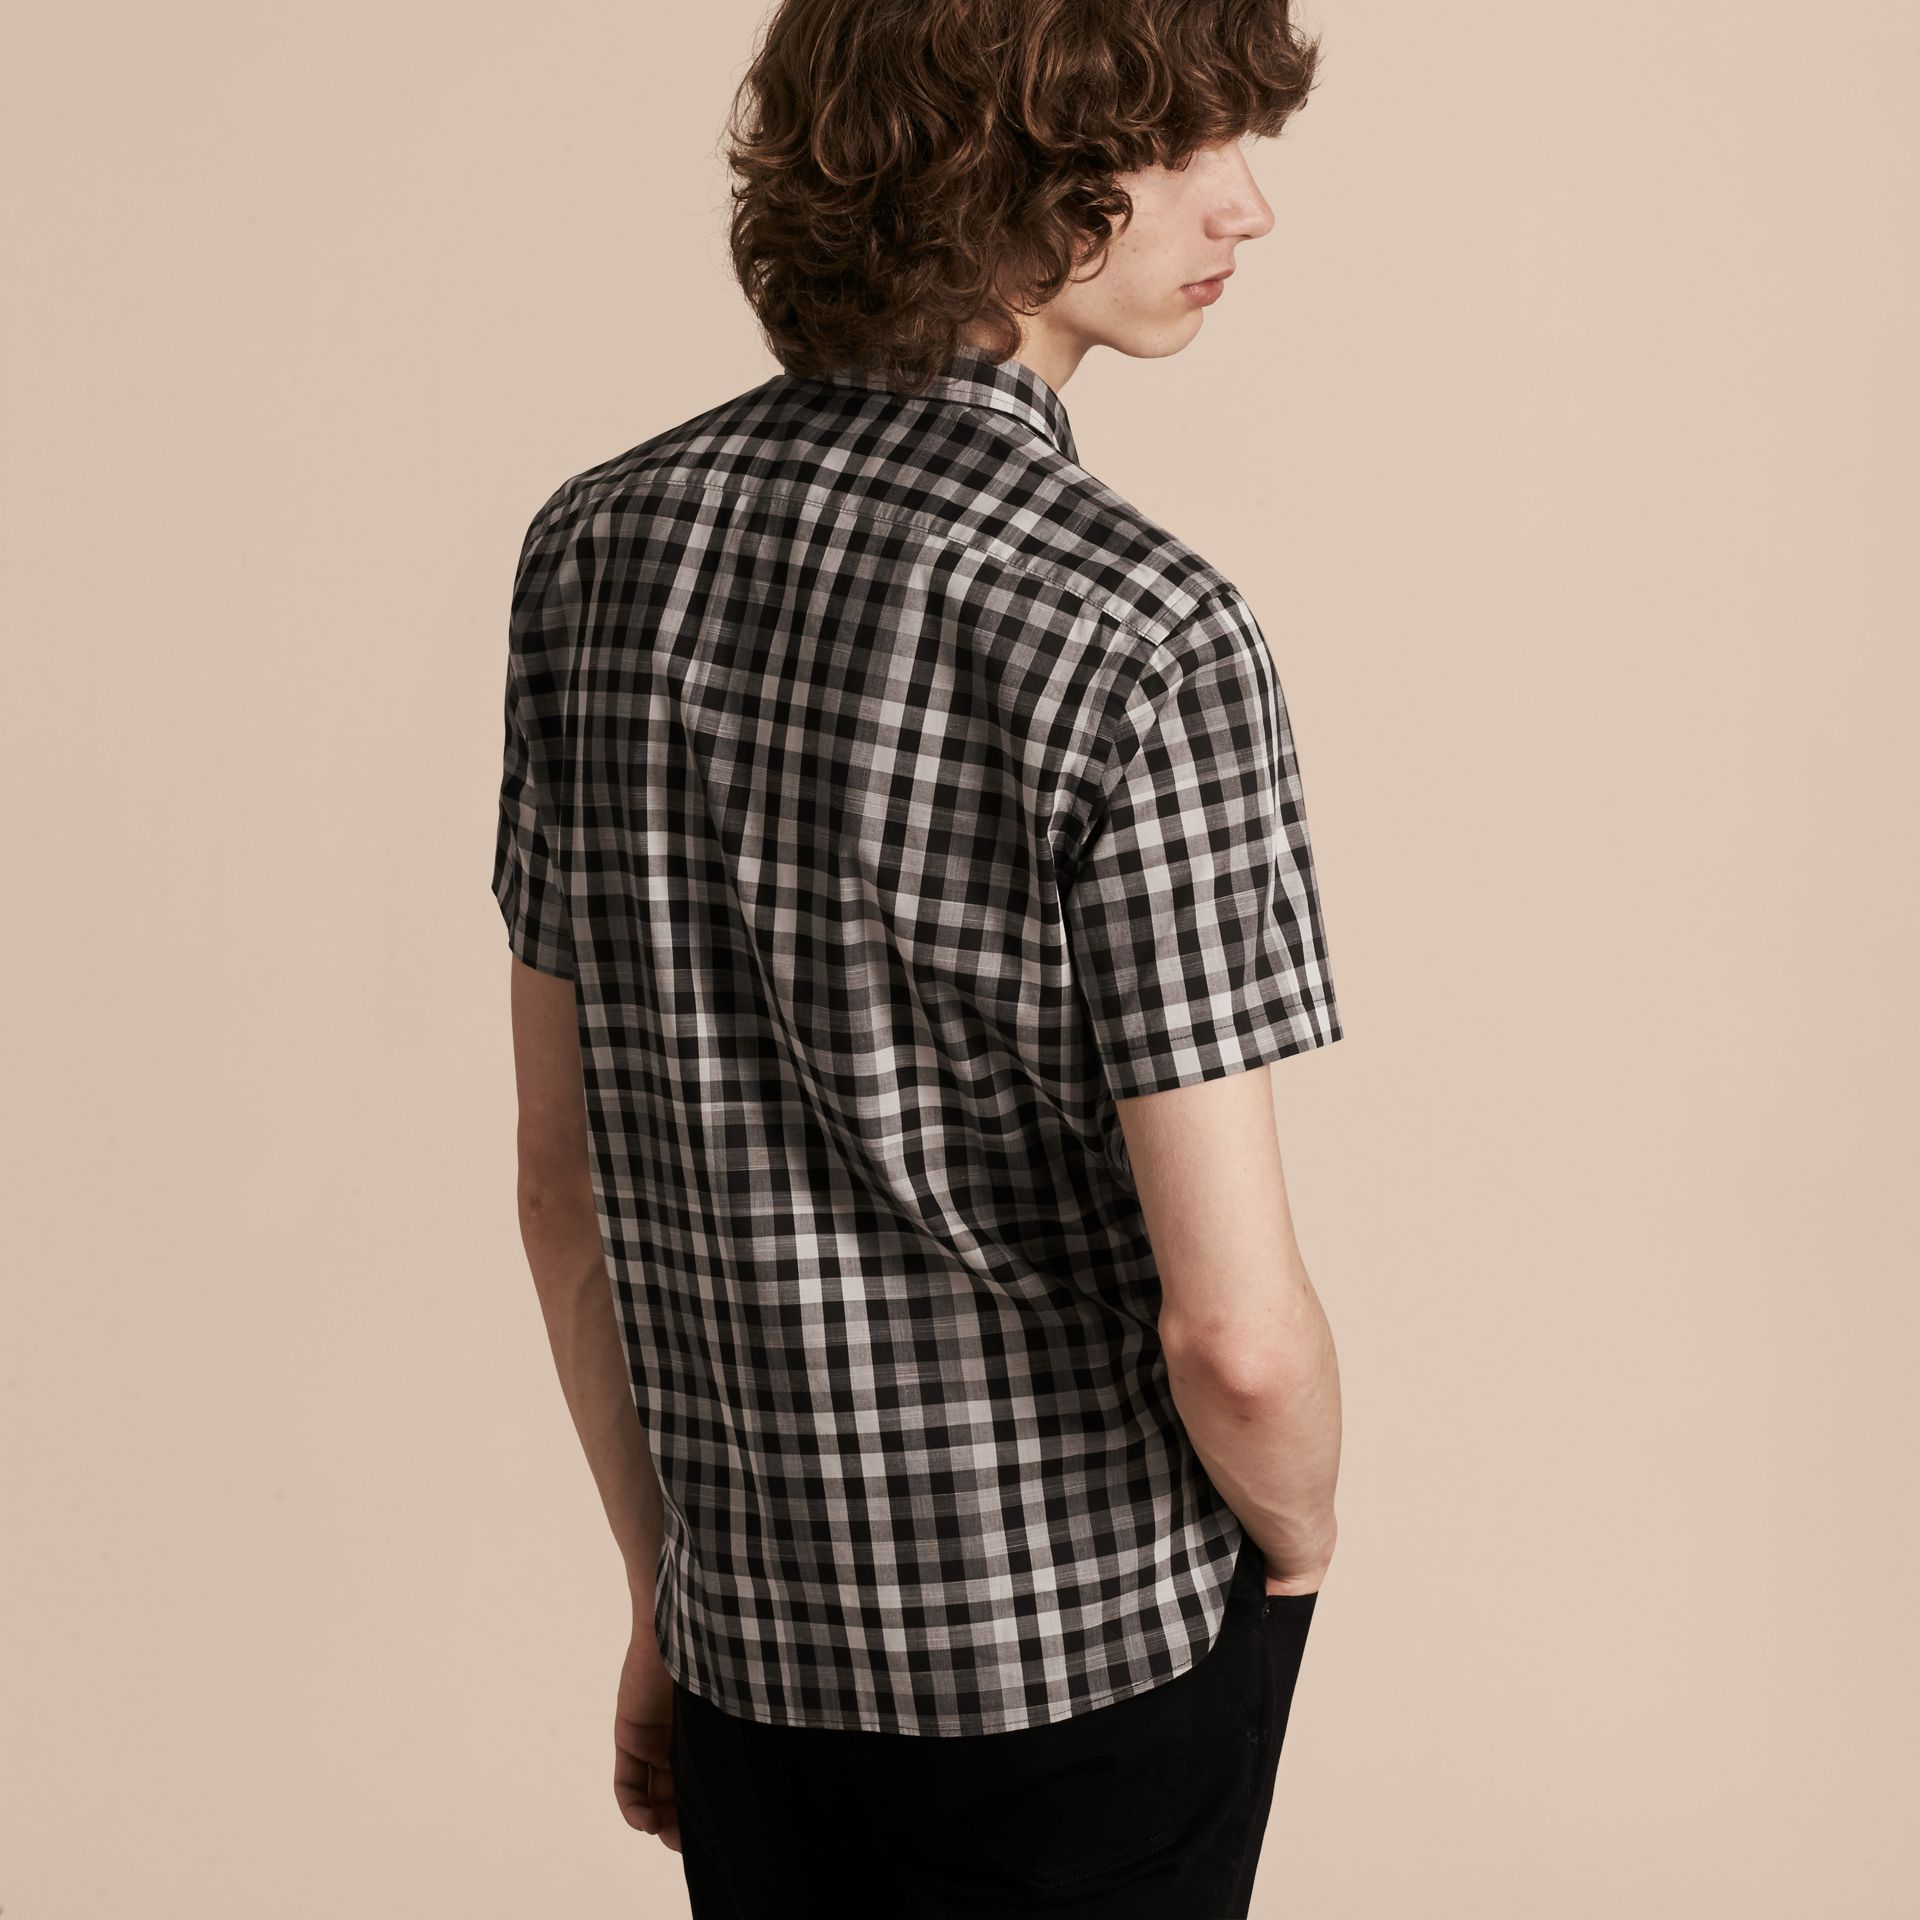 Black Short-sleeved Gingham Cotton Shirt Black - gallery image 3